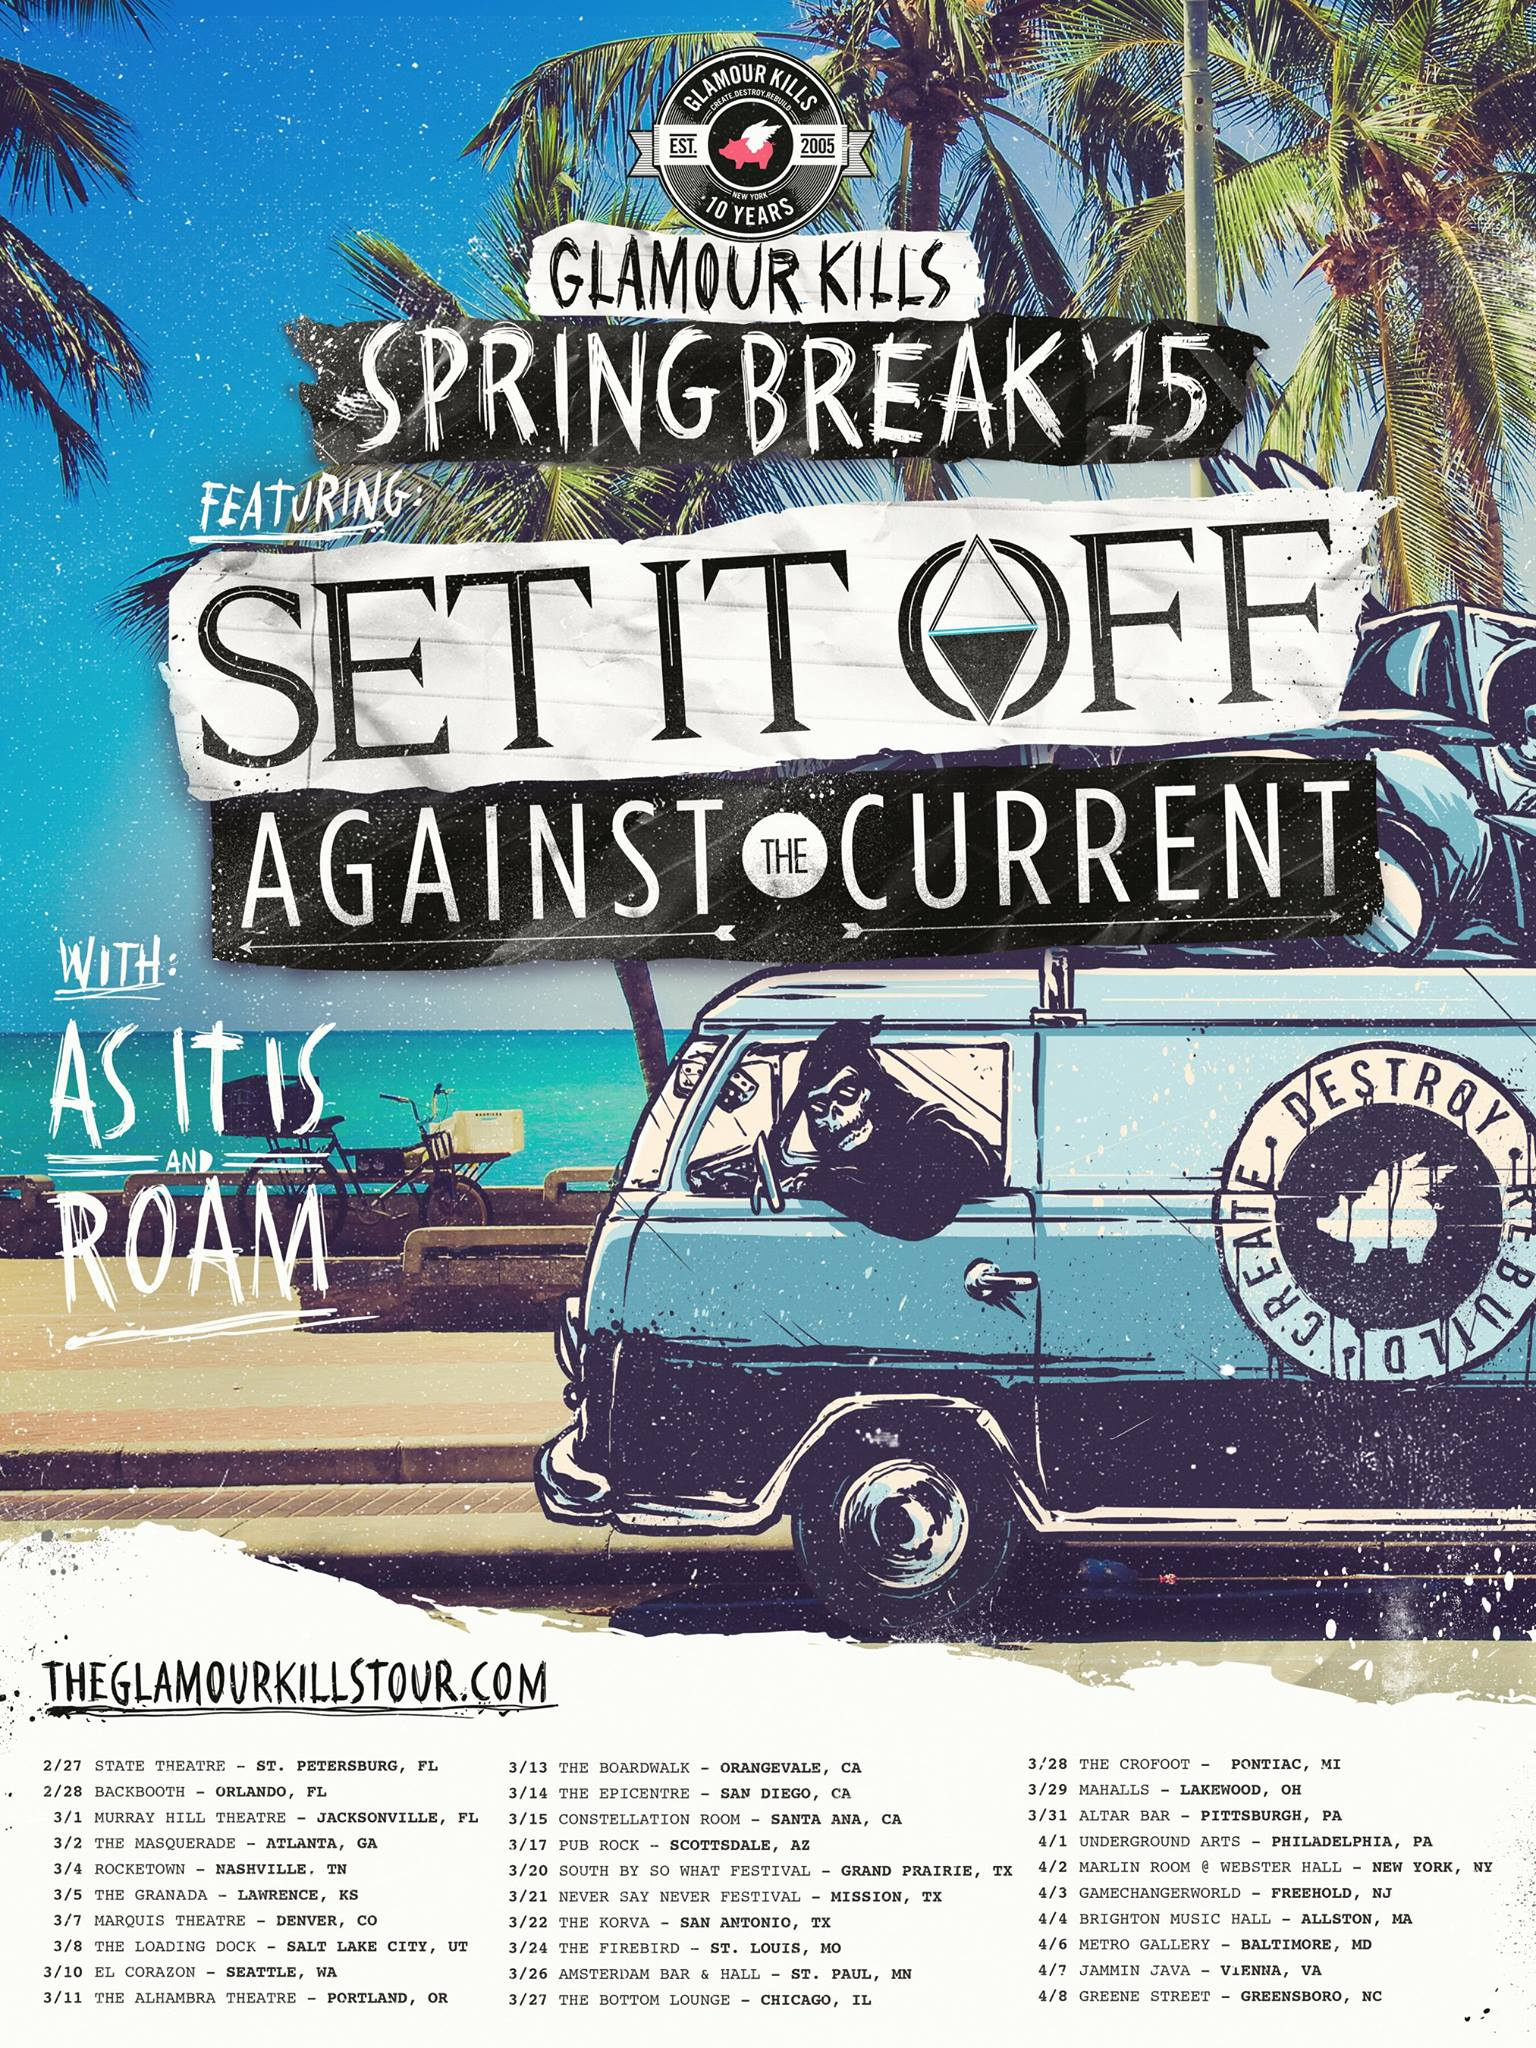 Glamour Kills Spring Break '15 Tour with Set It Off, Against The Current, As It Is, and Roam